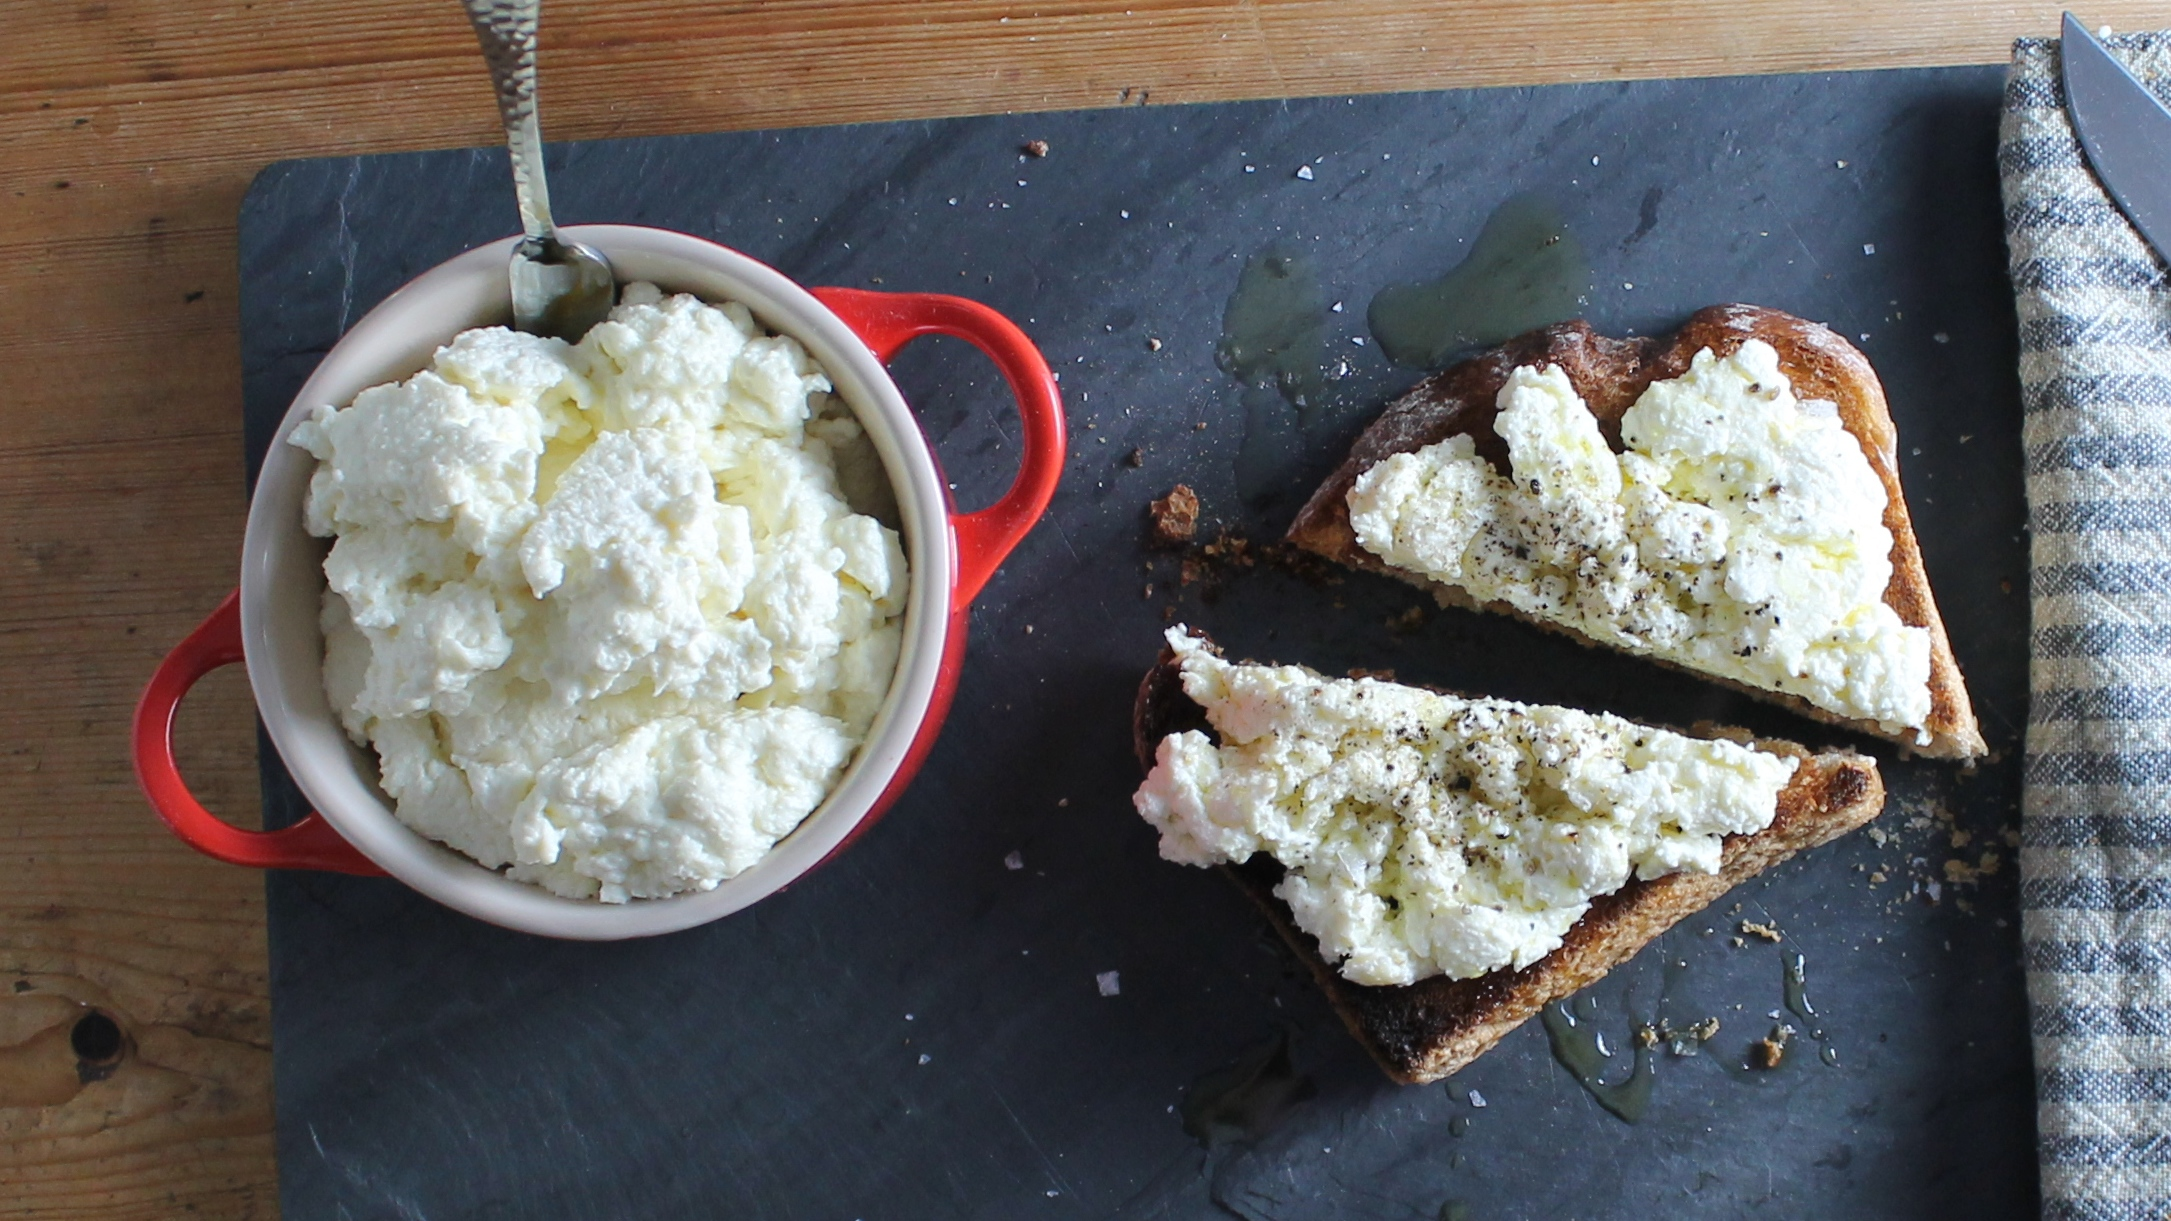 Raw Milk Ricotta on Toast | www.hungryinlove.com